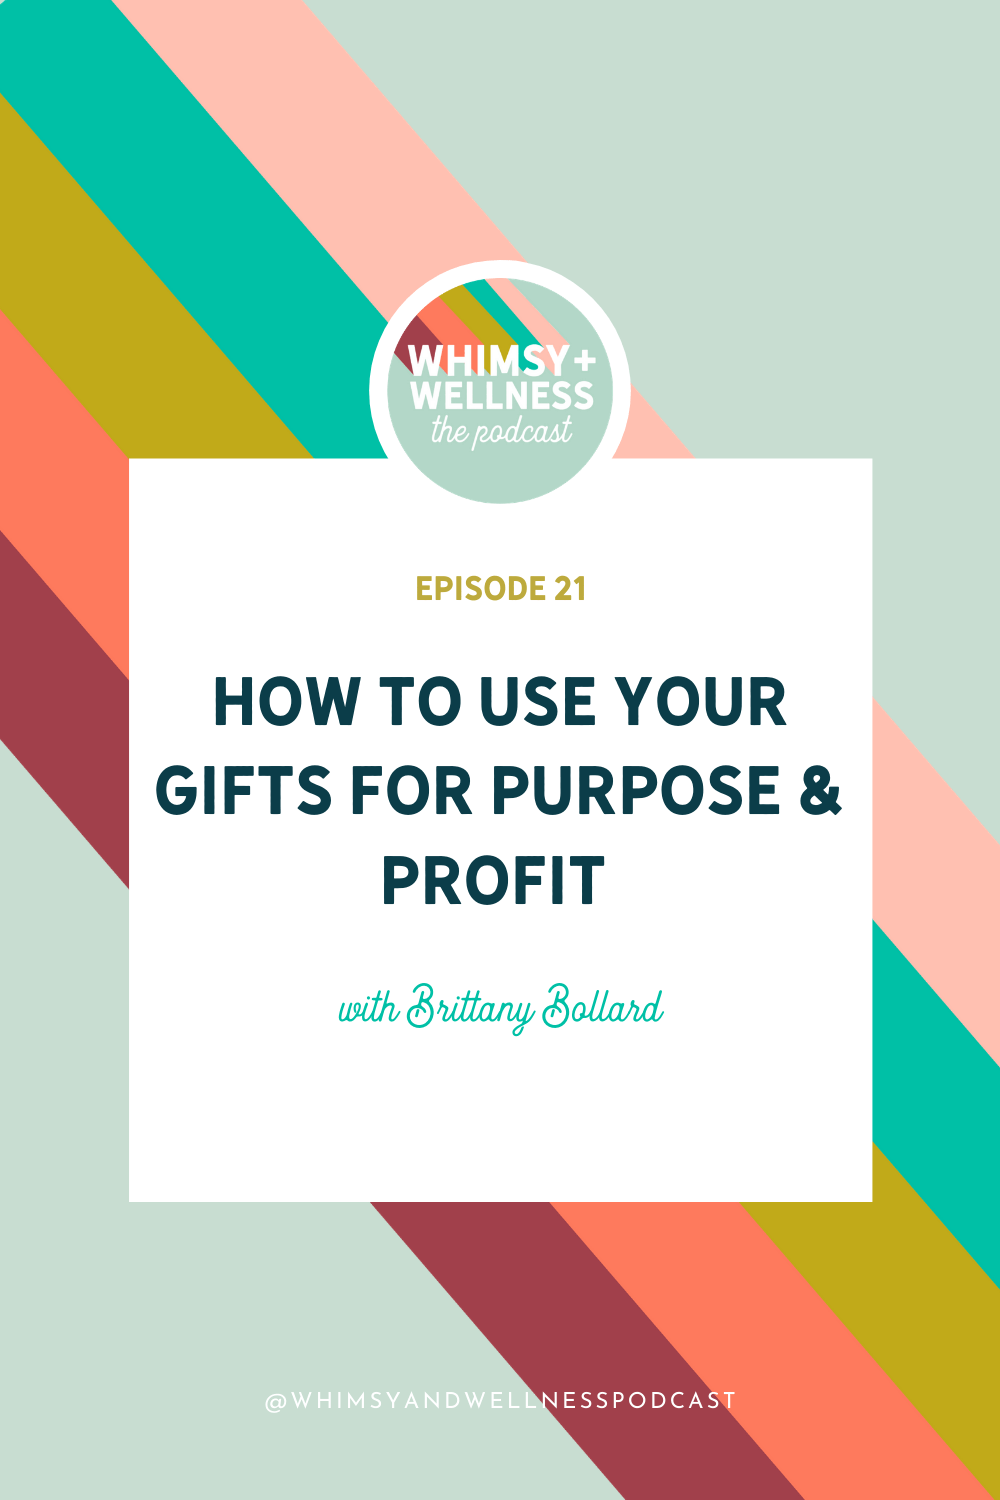 gifts or purpose and profit whimsy + wellness podcast